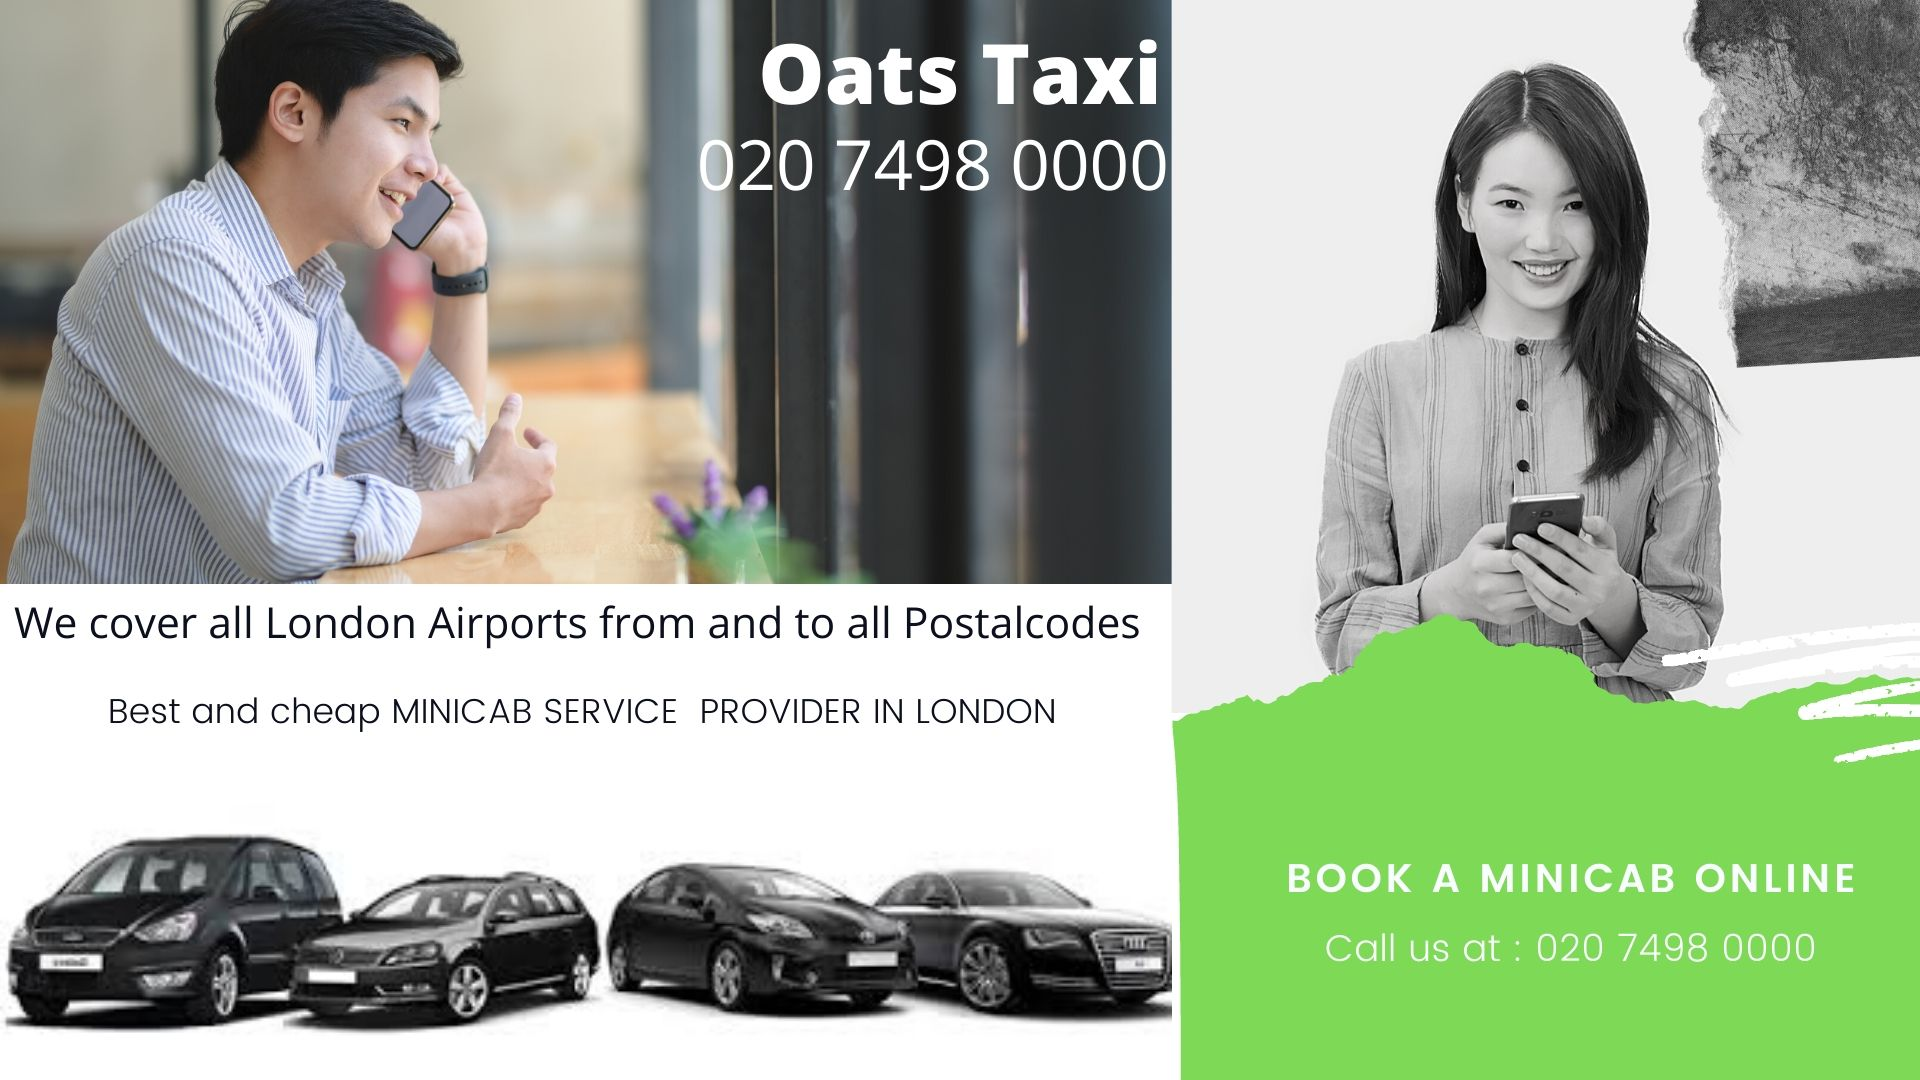 Nearest Taxi Office in Cottenham Park | Nearest Taxi Office in Gatwick Airport | Call now : 02074980000